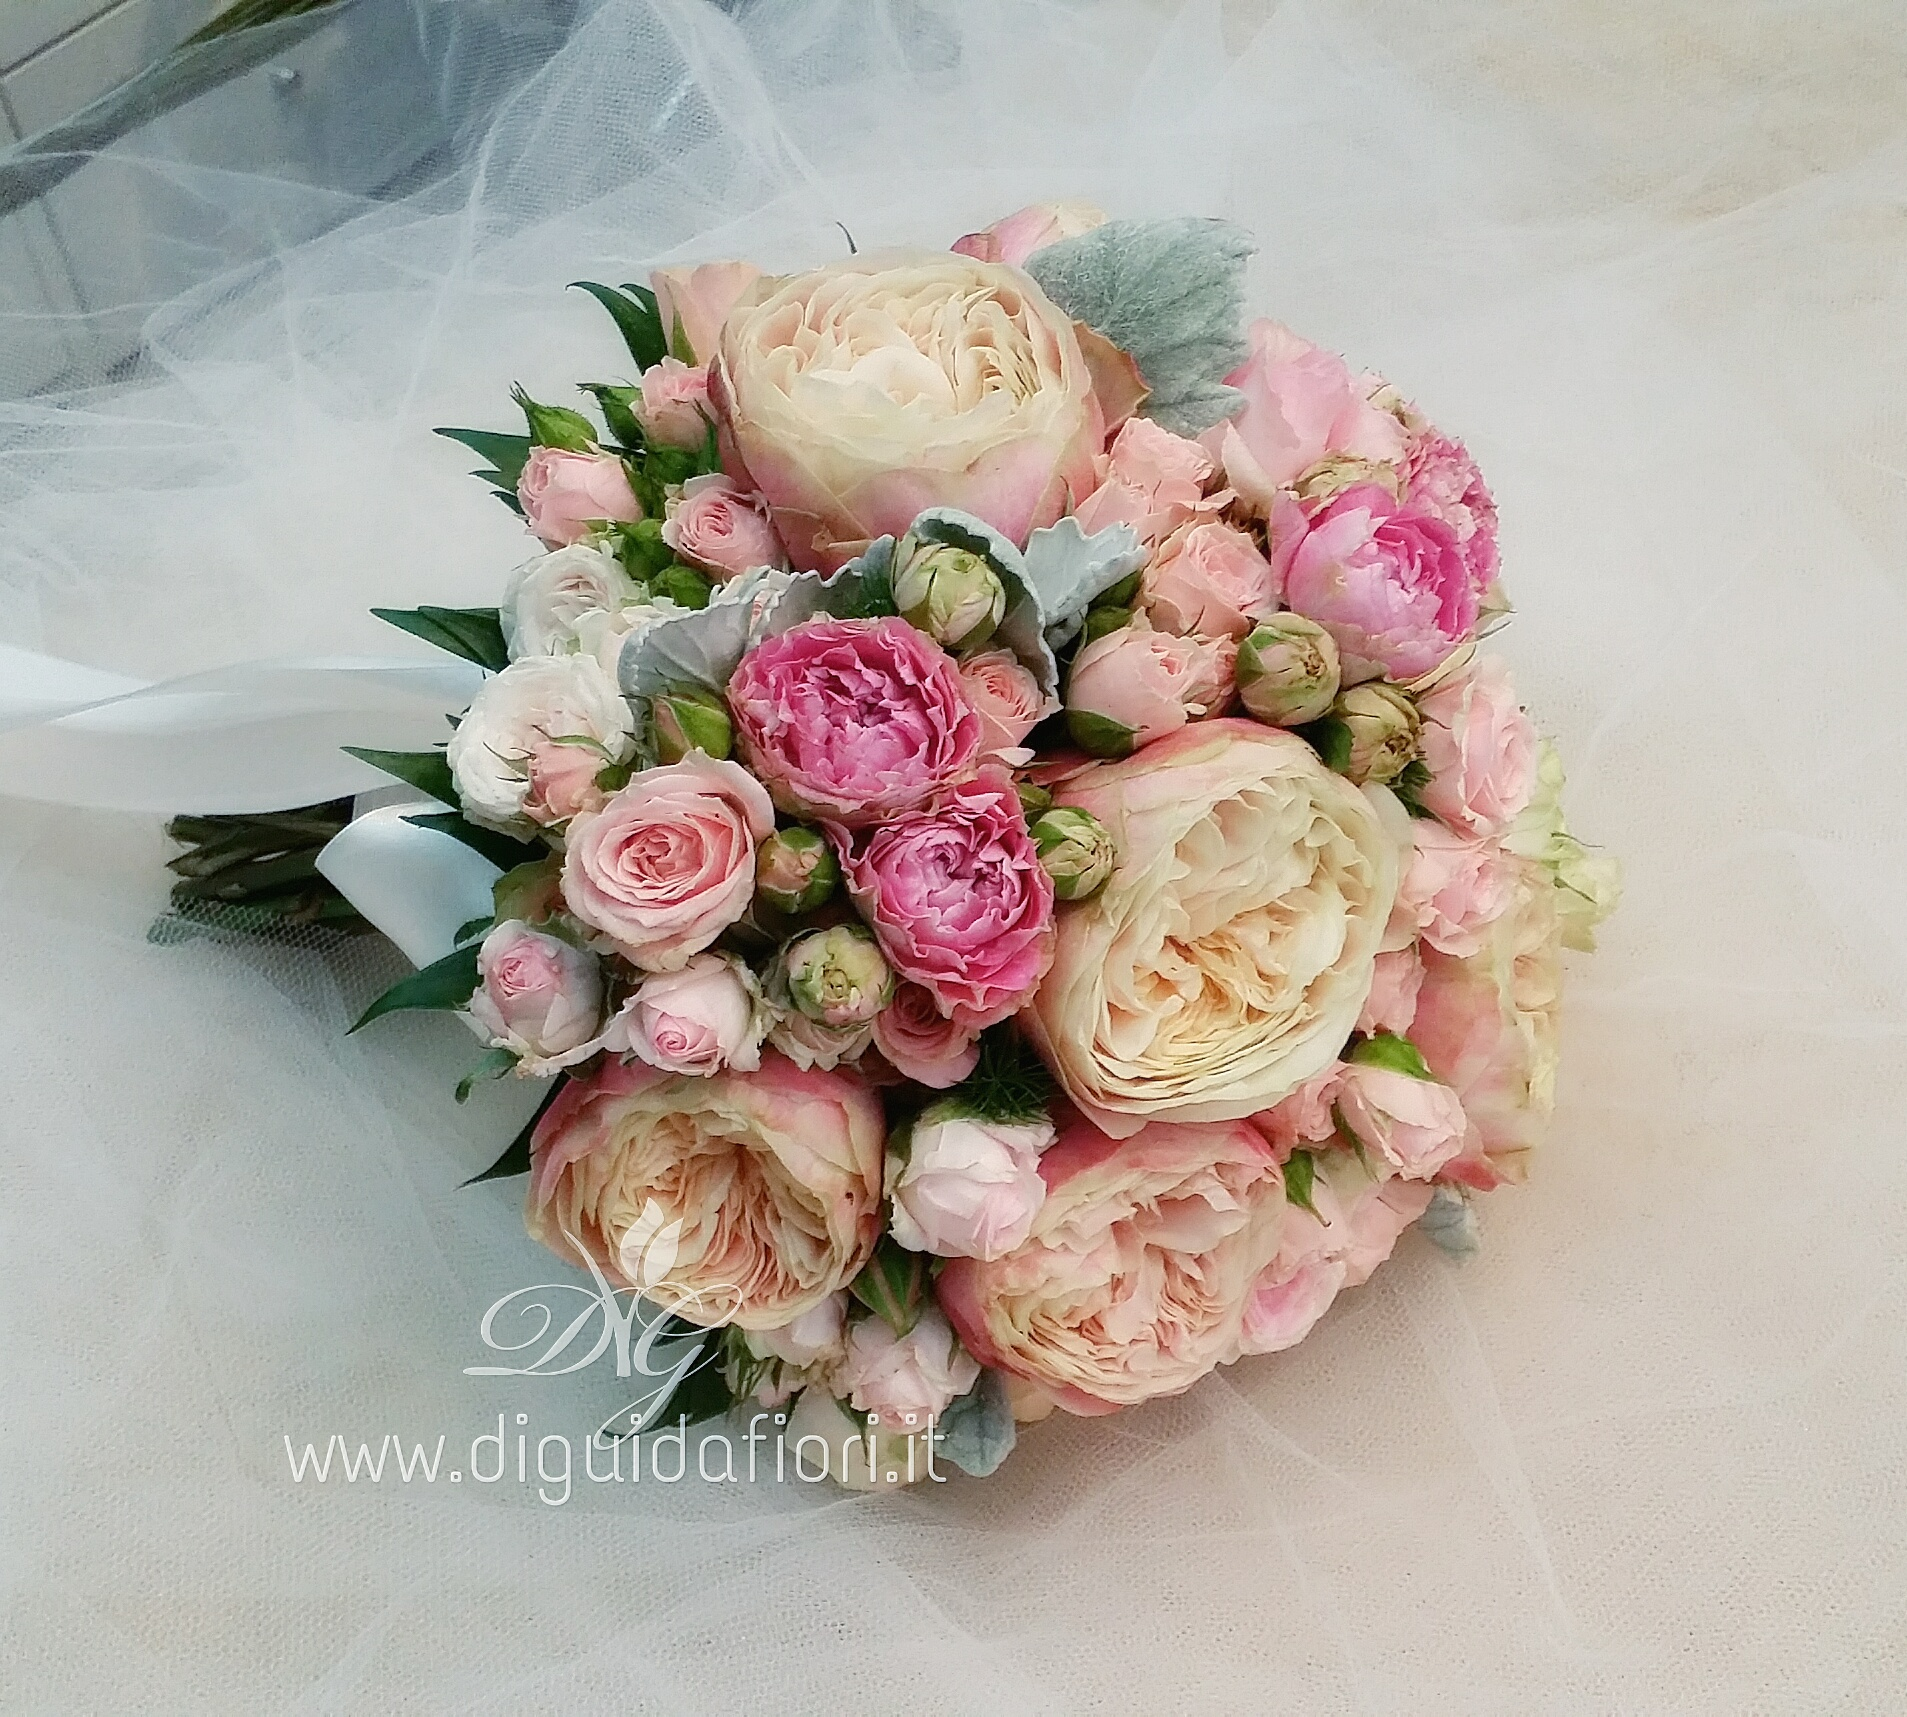 Bouquet da sposa con rose inglesi – bridal bouquet english roses